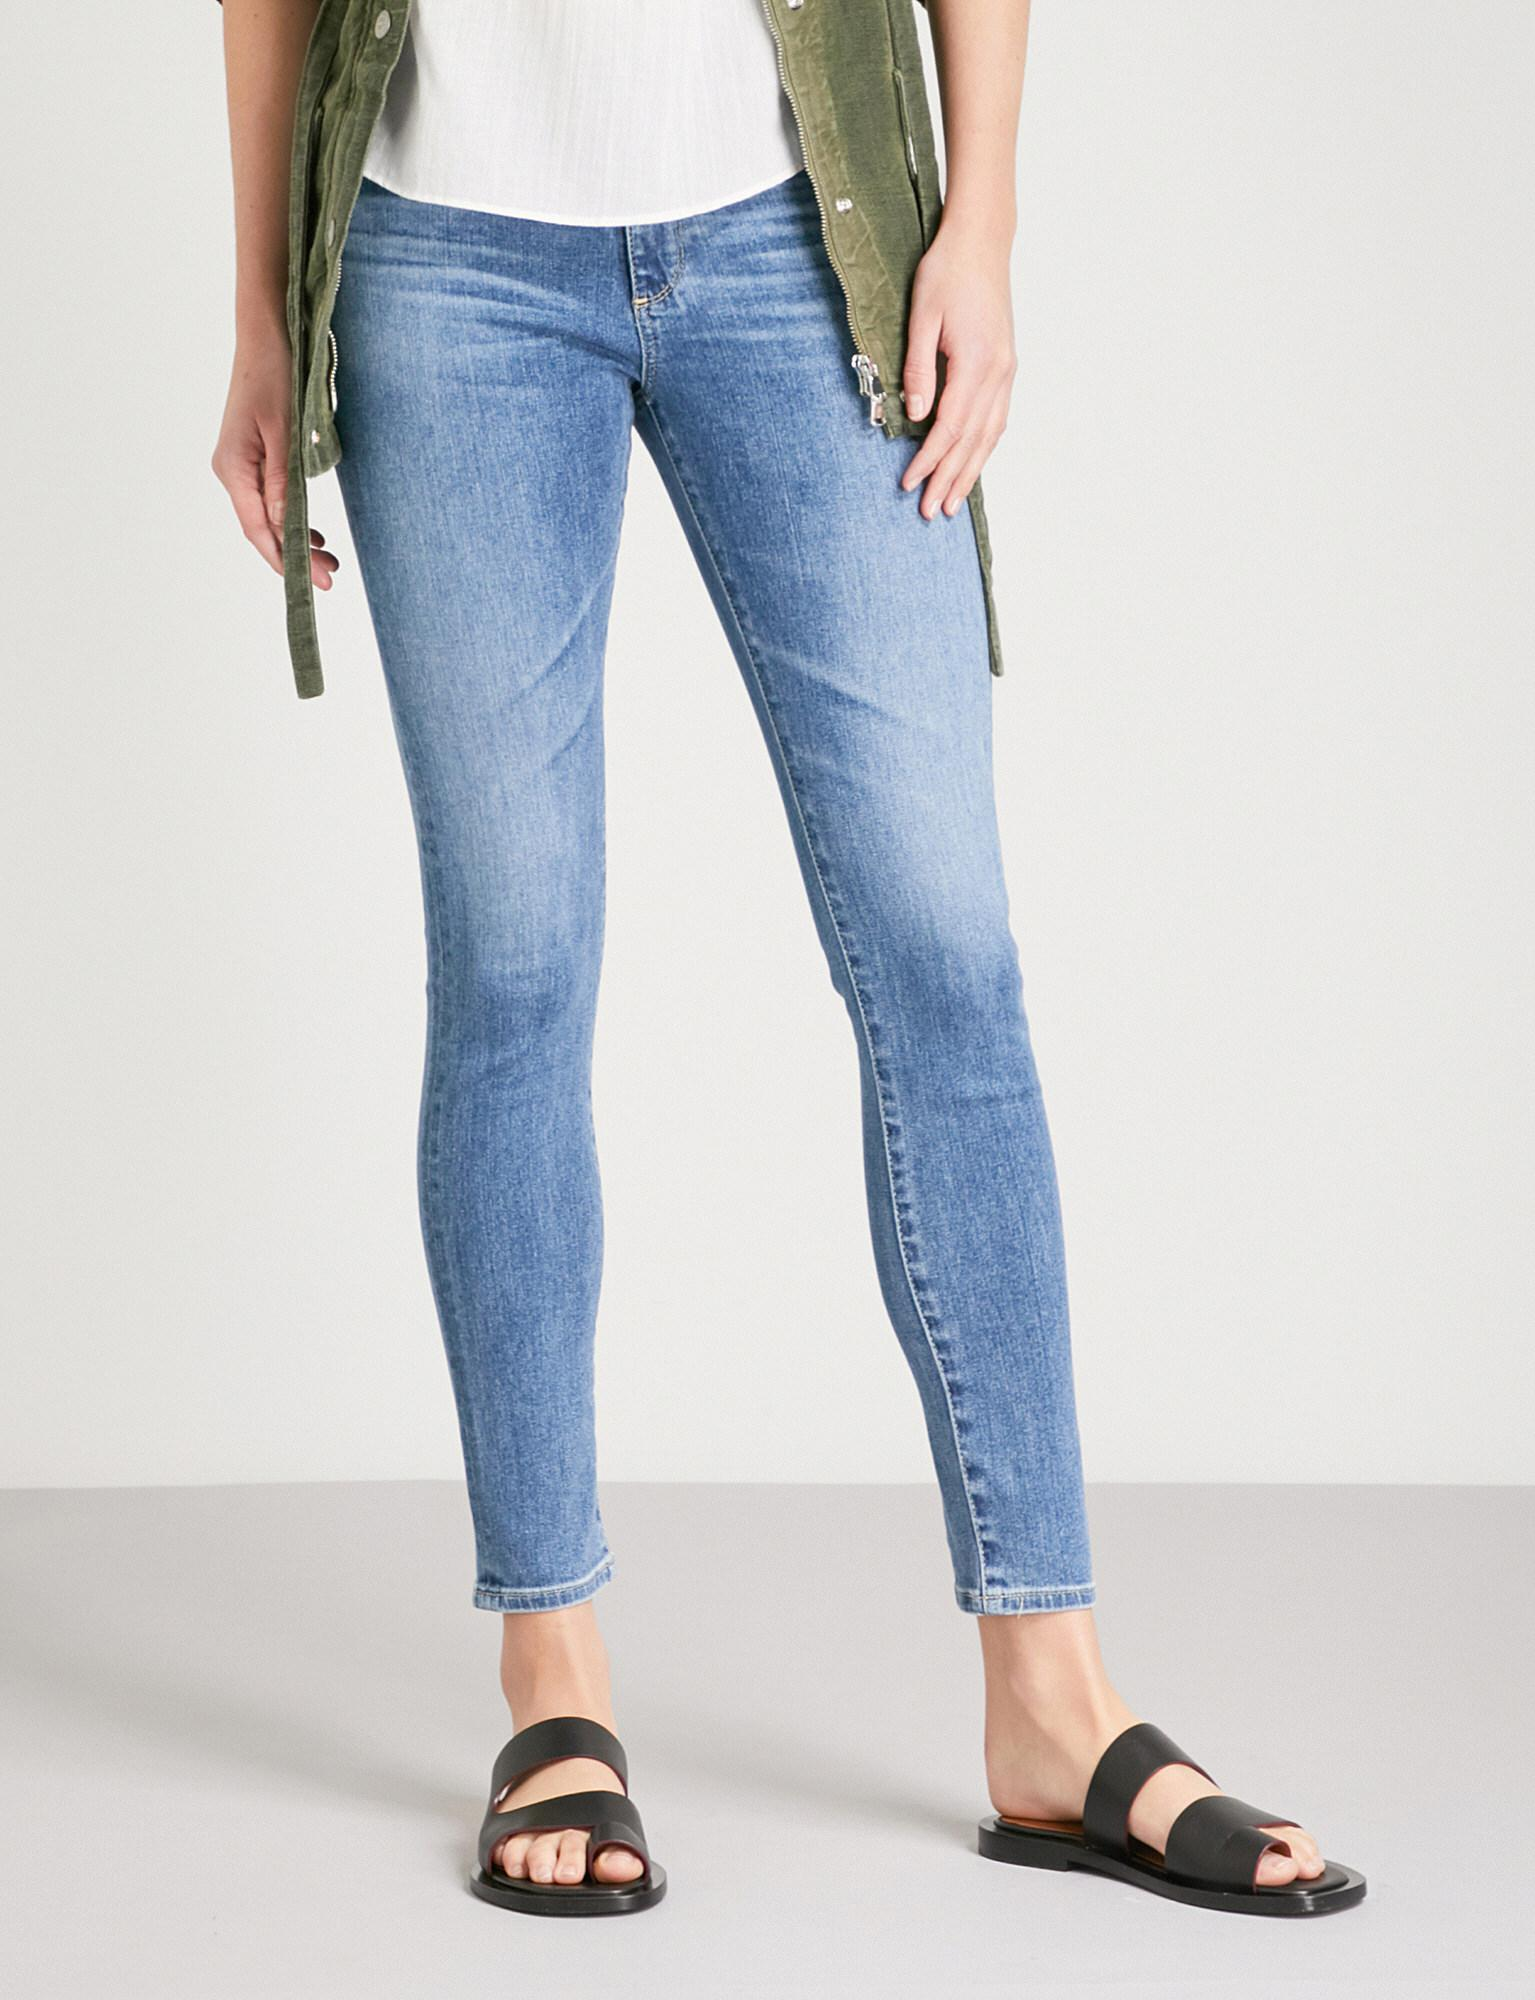 781bea6b43b5 Lyst - AG Jeans The Farrah Skinny High-rise Jeans in Blue